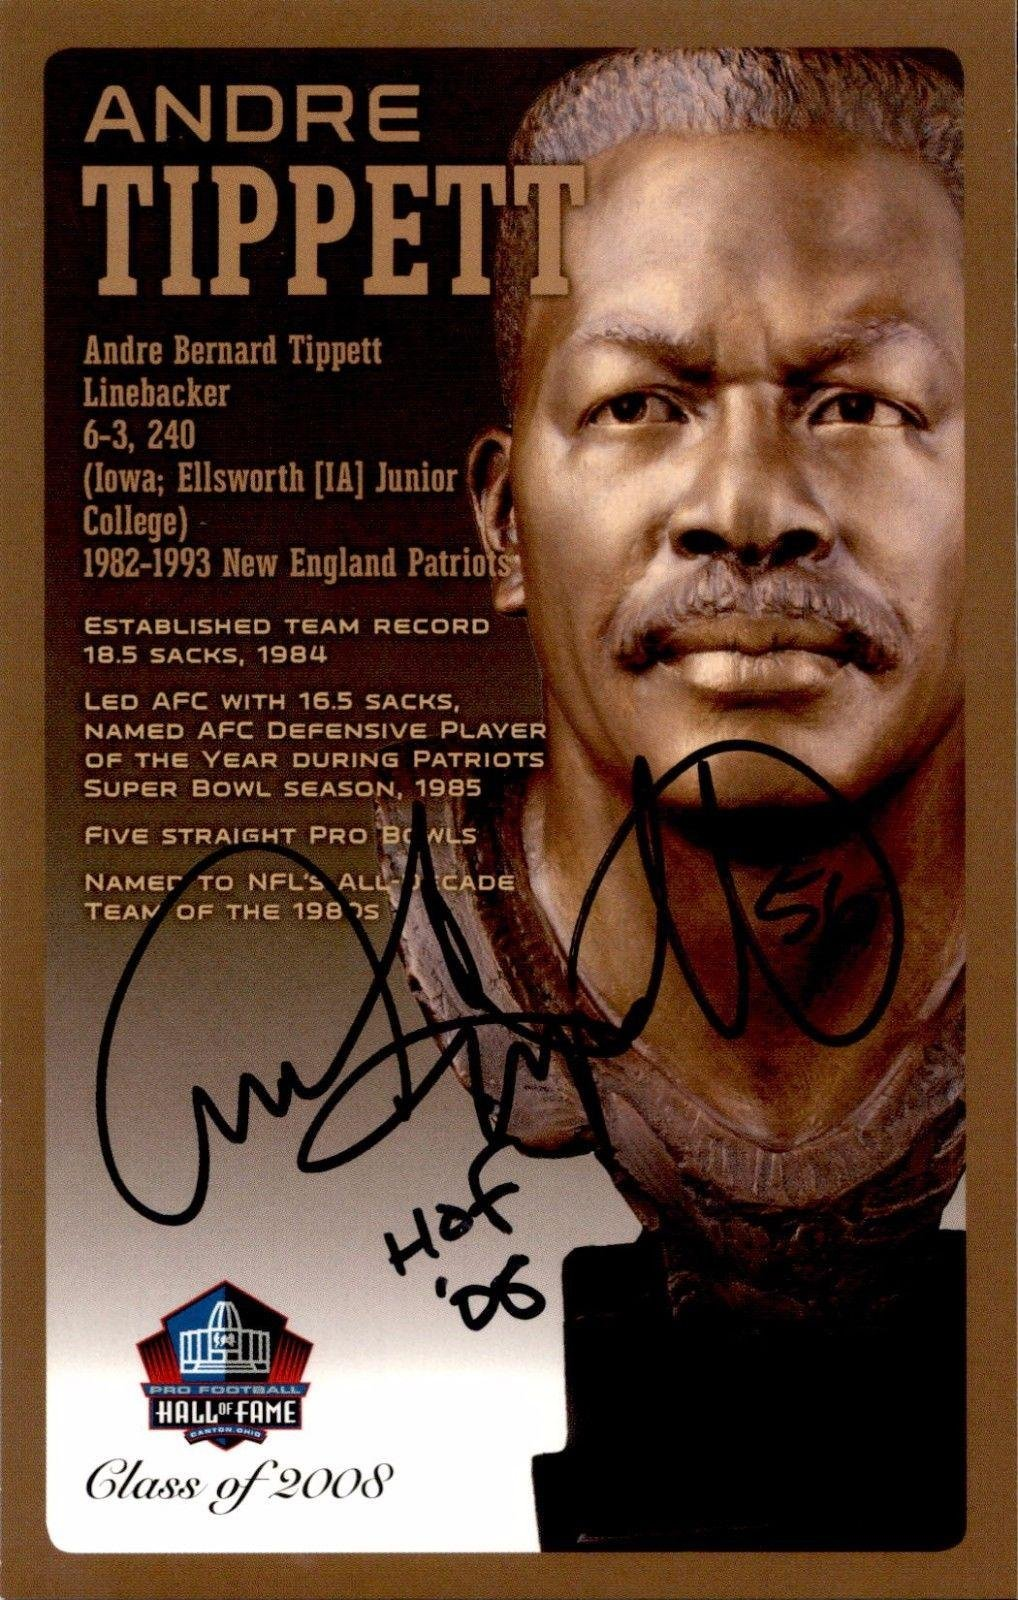 Andre Tippett Iowa Patriots Signed NFL Hall Of Fame Bronze Bust Postcard /150 NFL Cut Signatures